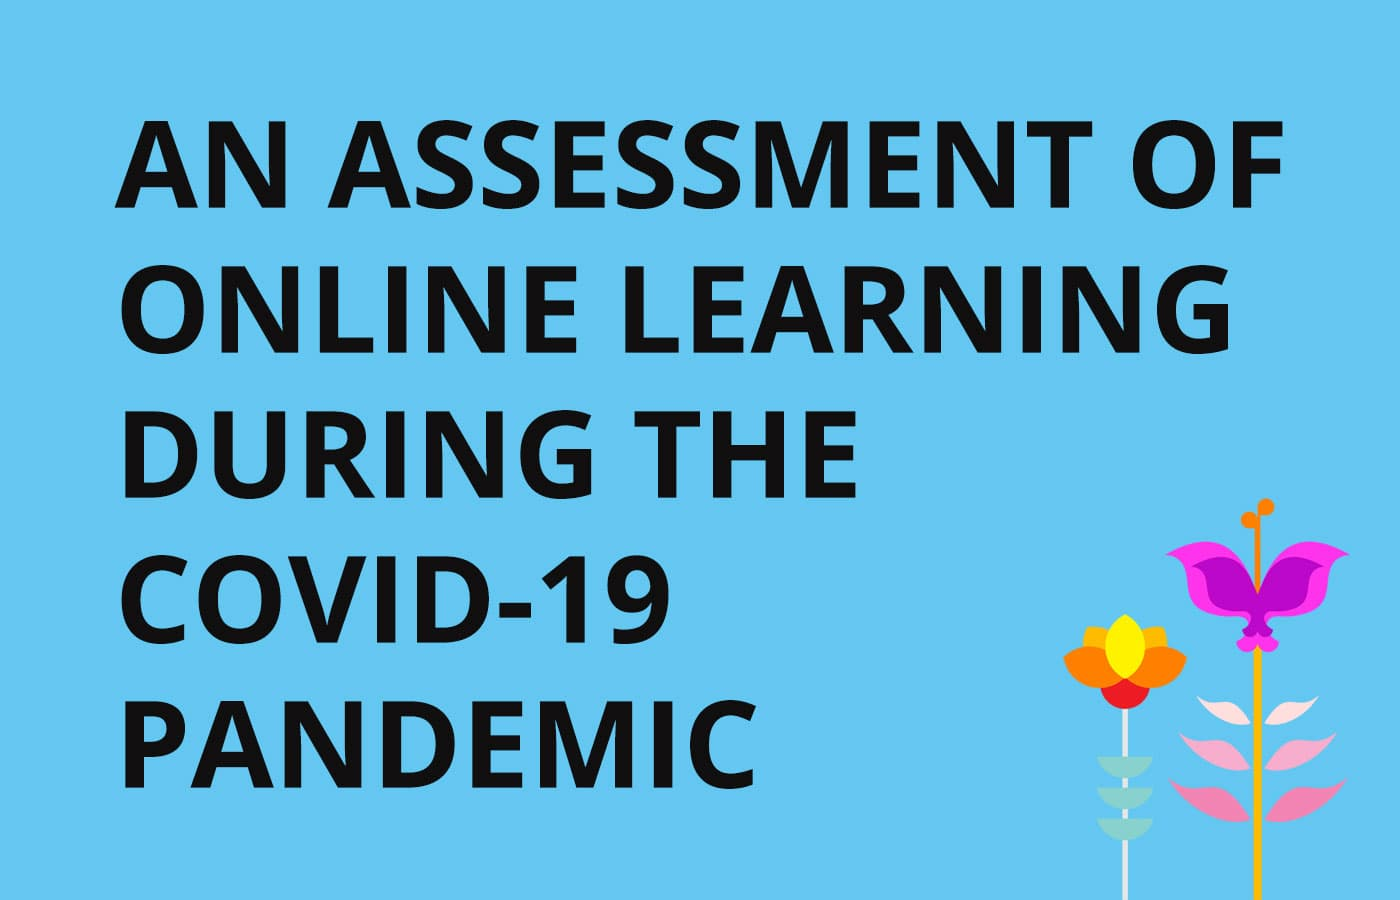 Online Learning During the Covid-19 Pandemic